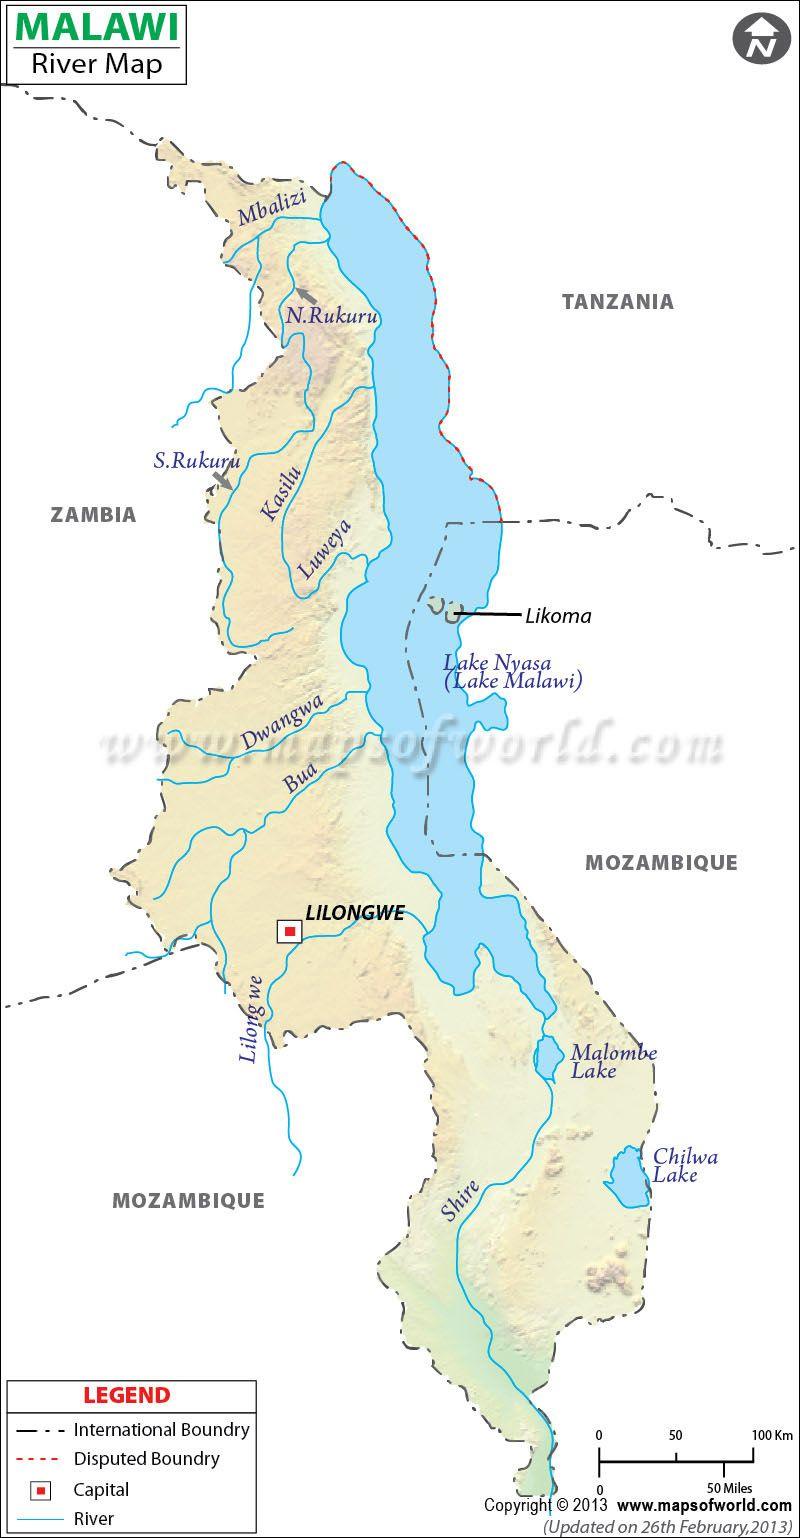 Malawi River Map | Maps | Africa map, Map, River